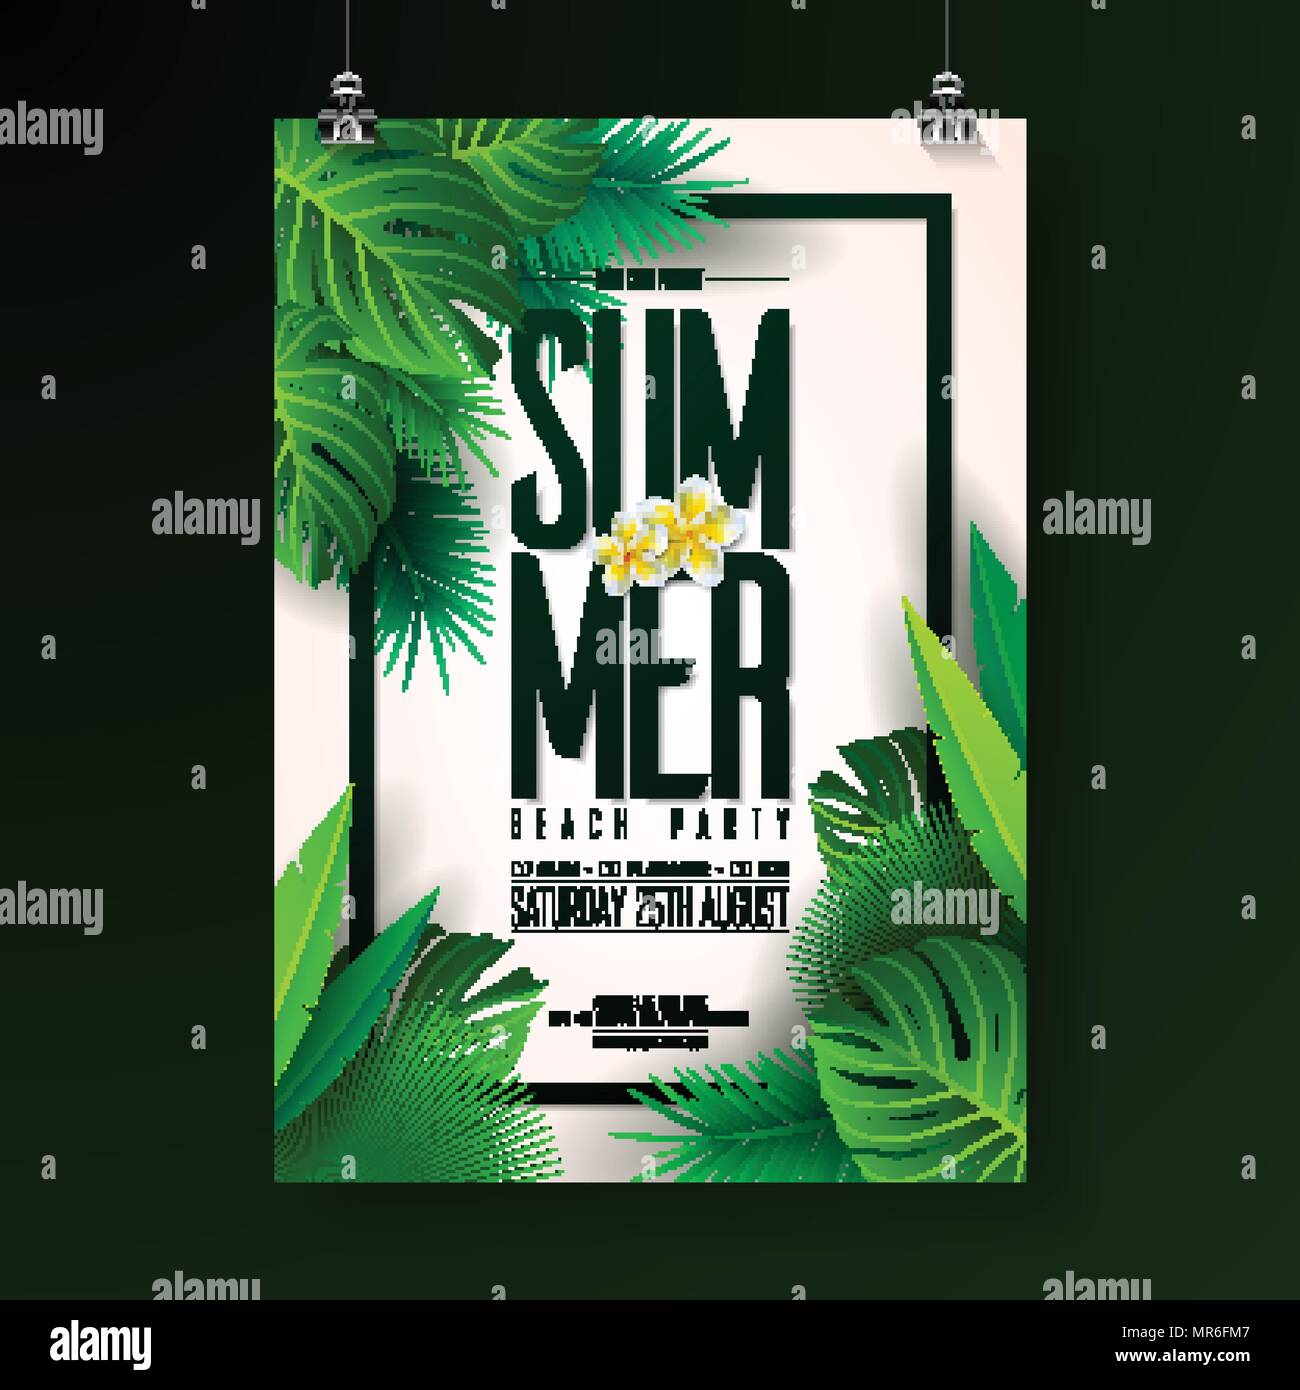 Vector Summer Beach Party Flyer Design With Typographic Elements On Exotic Leaf Background Nature Floral Tropical Plants Flower